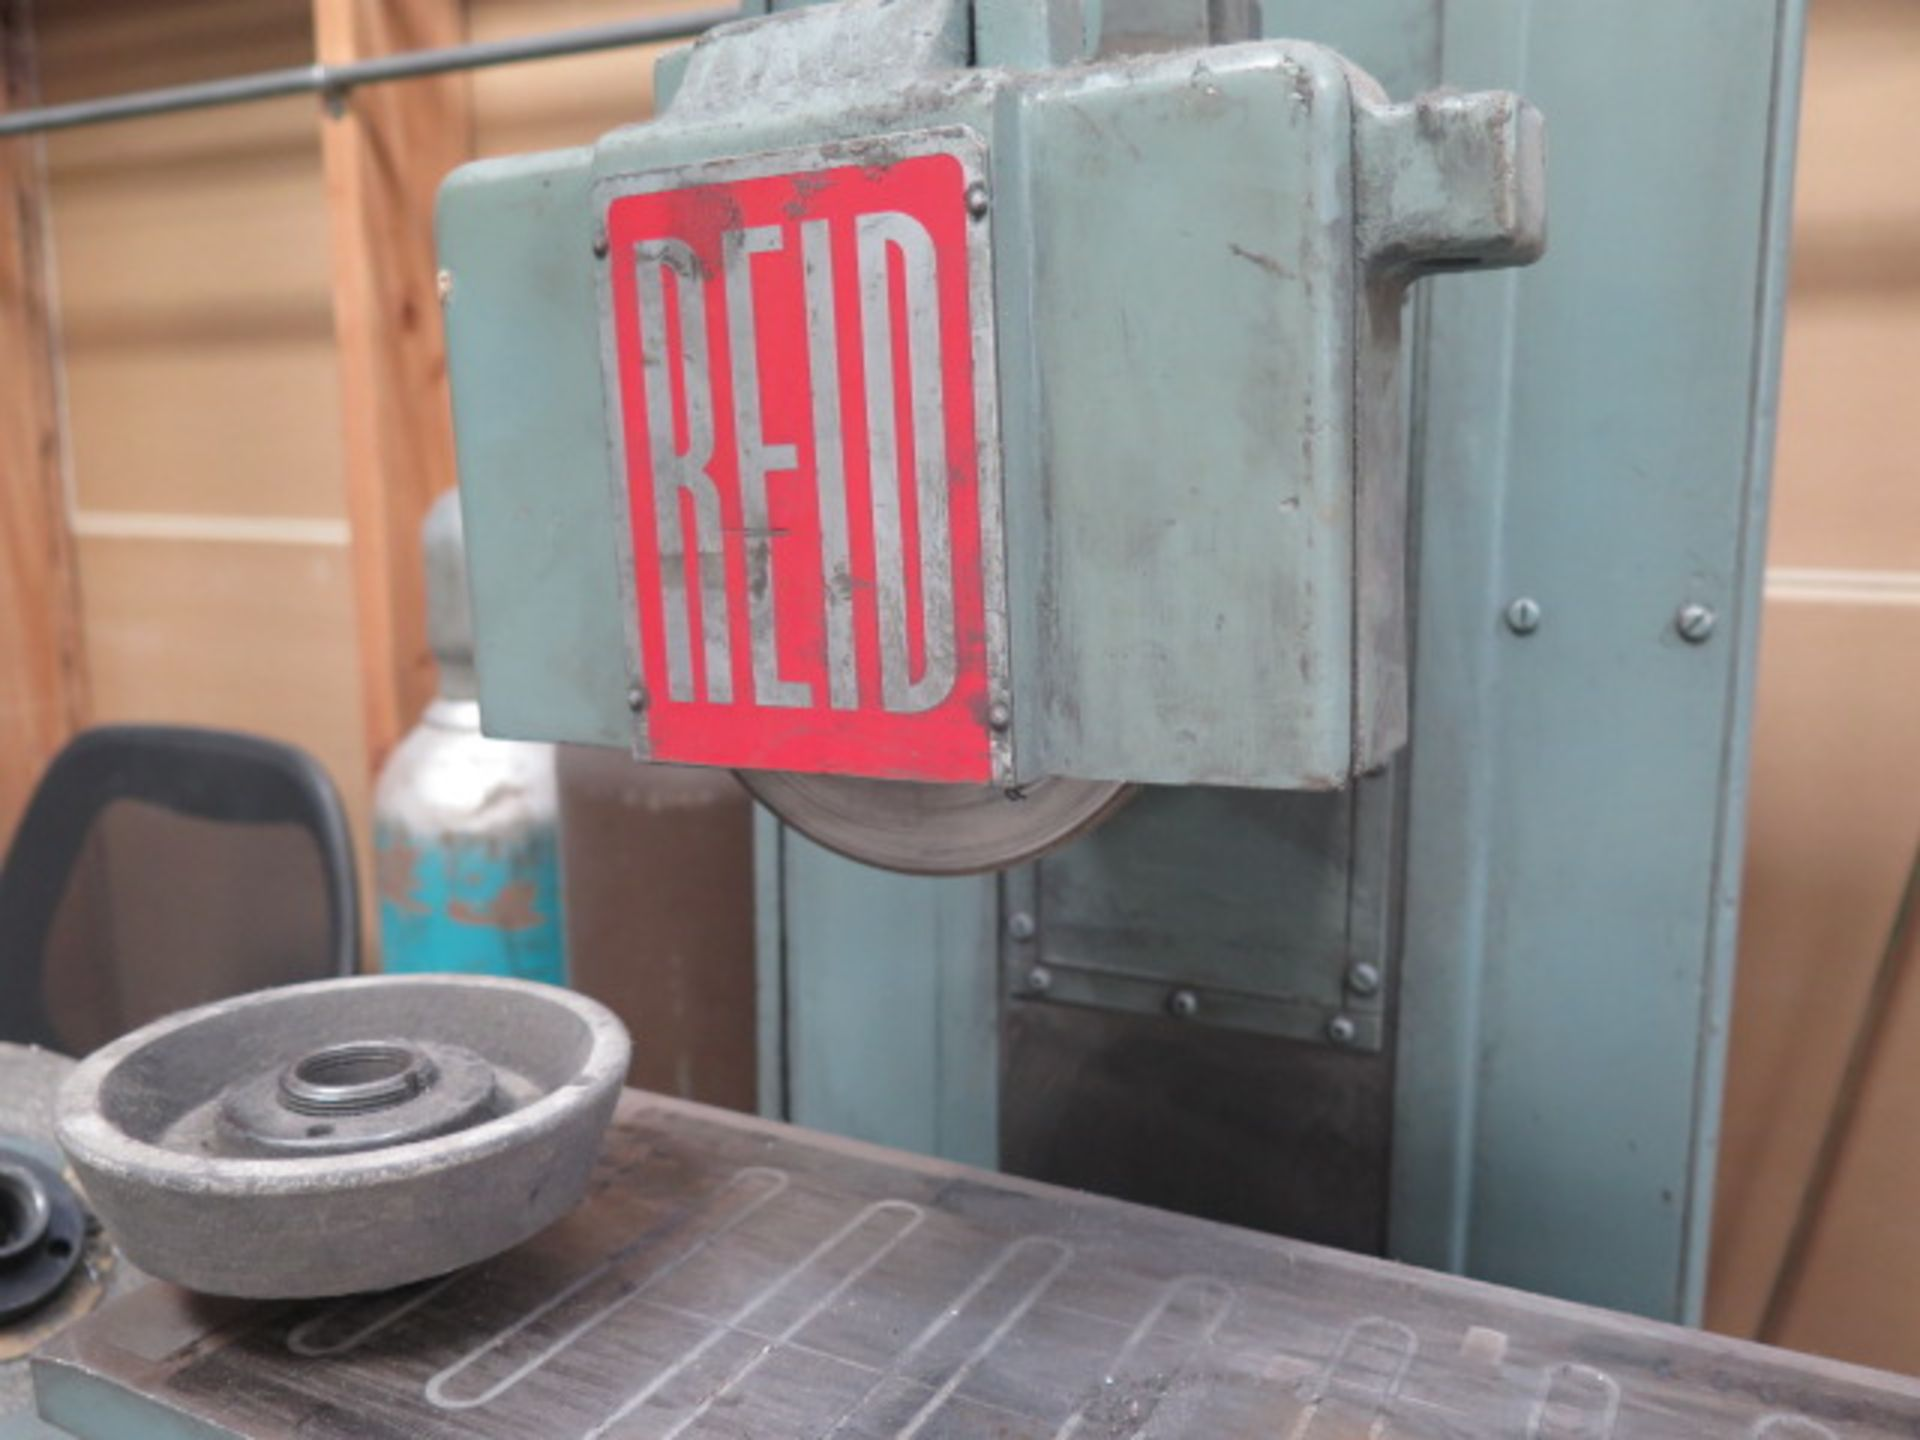 """Reid 618HA 6"""" x 18"""" Surface Grinder s/n 14554 w/ Magnetic Chuck (SOLD AS-IS - NO WARRANTY) - Image 7 of 9"""